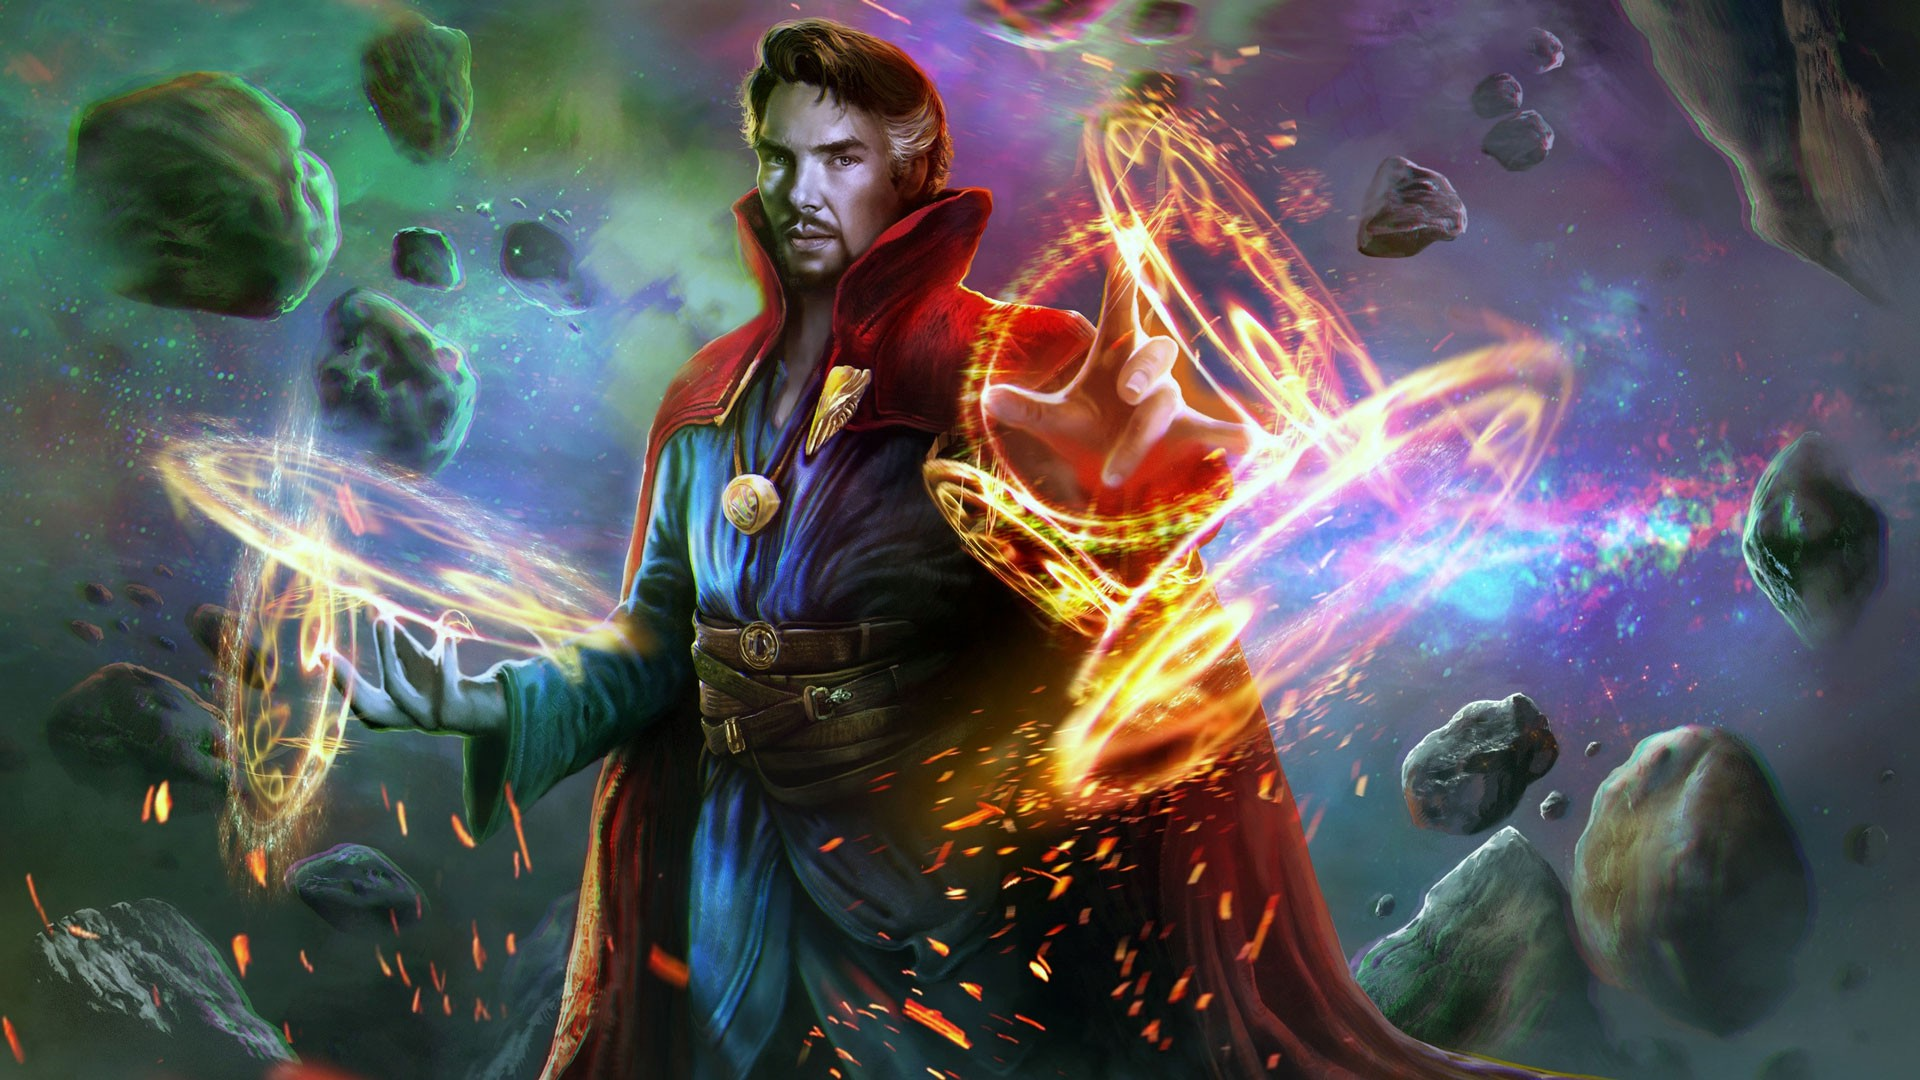 dr. strange wallpaper ·① download free cool high resolution